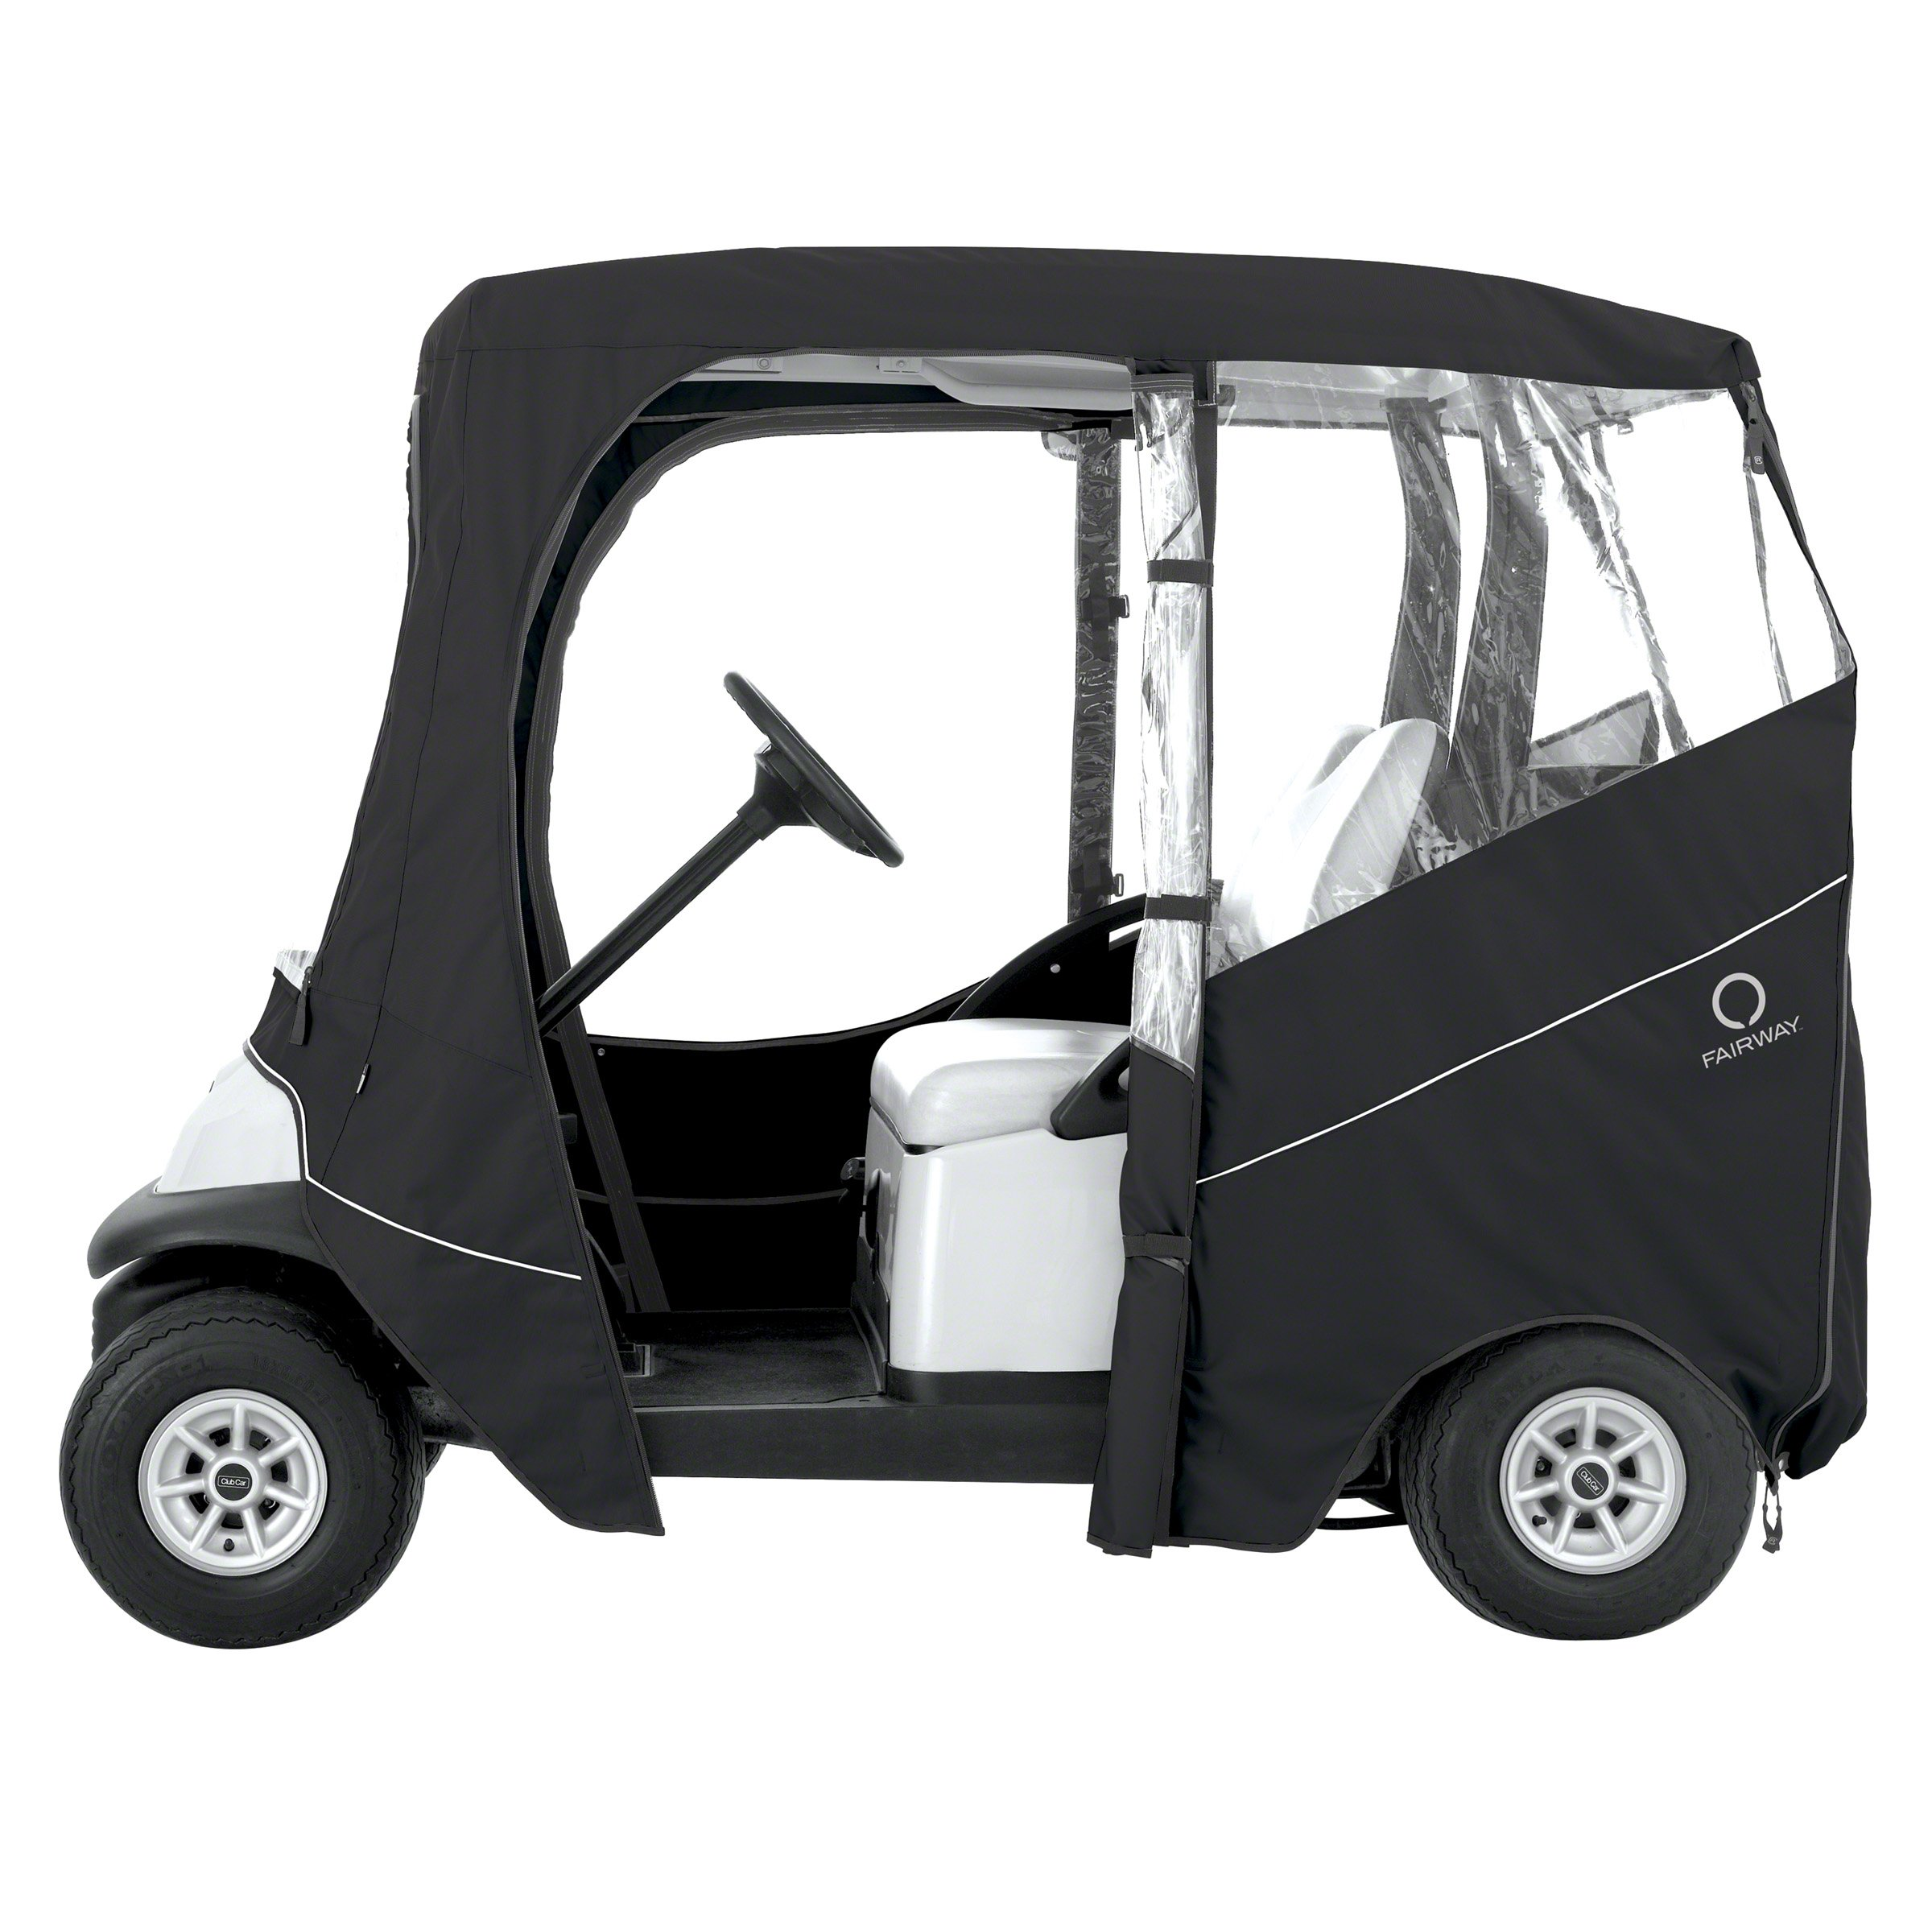 Classic Accessories Fairway Golf Cart Deluxe Enclosure, Black, Short Roof by Classic Accessories (Image #6)